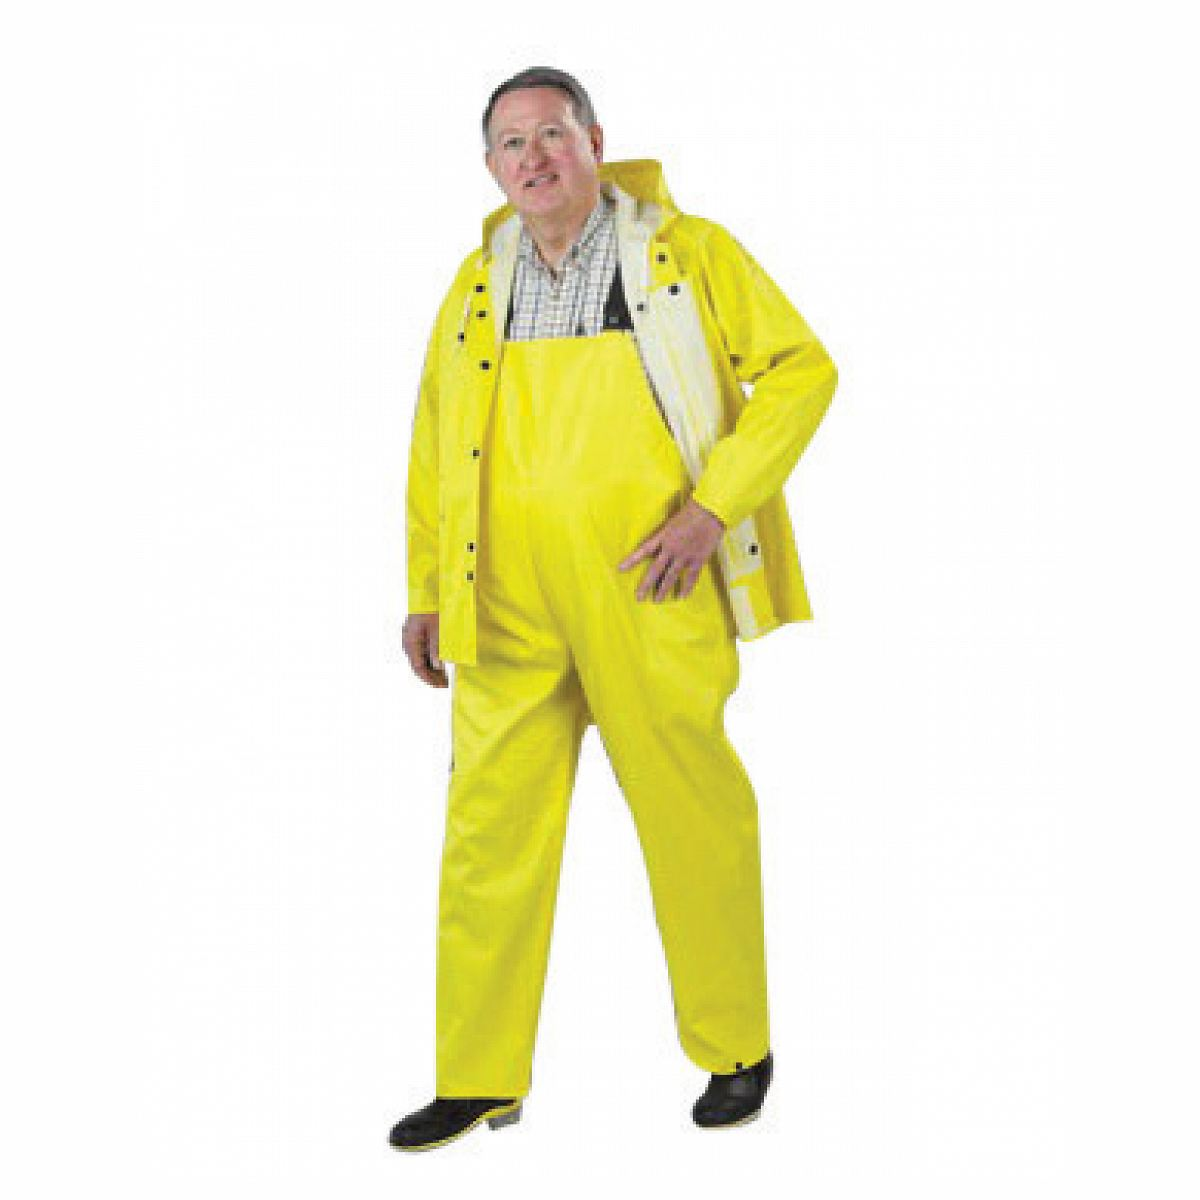 Onguard Industries Large Yellow Webtex .6500 mm PVC And Non-Woven Polyester Rain Bib Overalls With No Fly Closure And Plain F 76050-LG